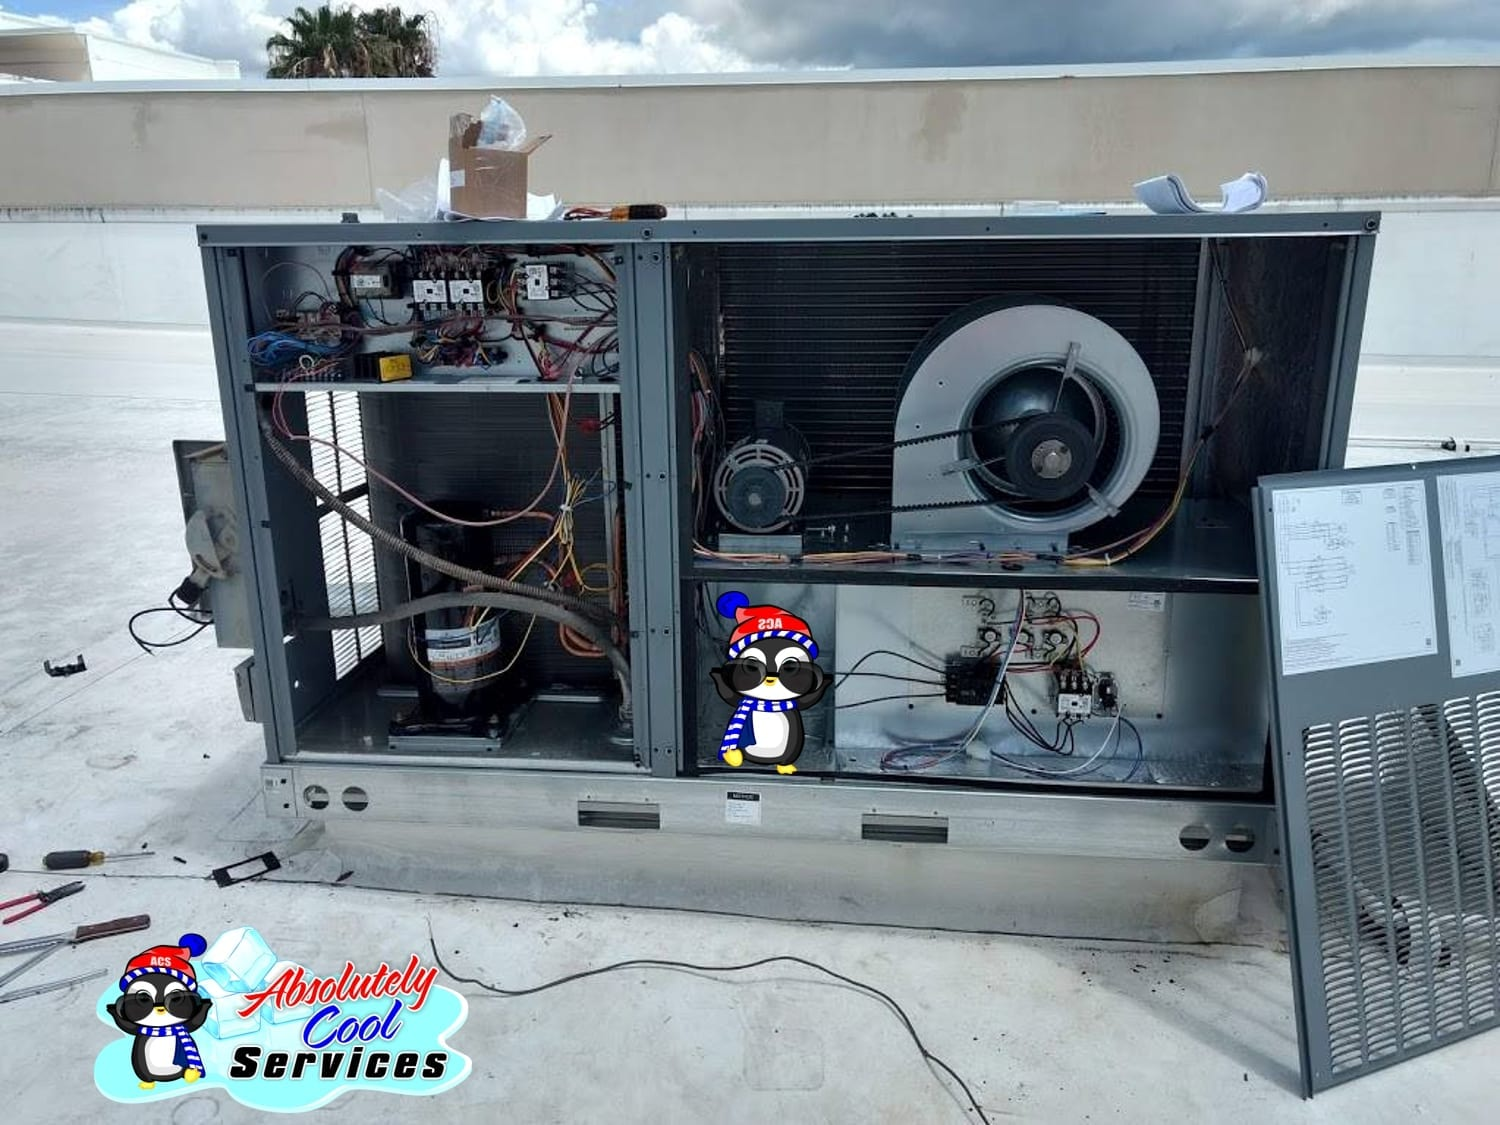 Roof Air Conditioning | Air Conditioning Duct Work Company near Boynton Beach